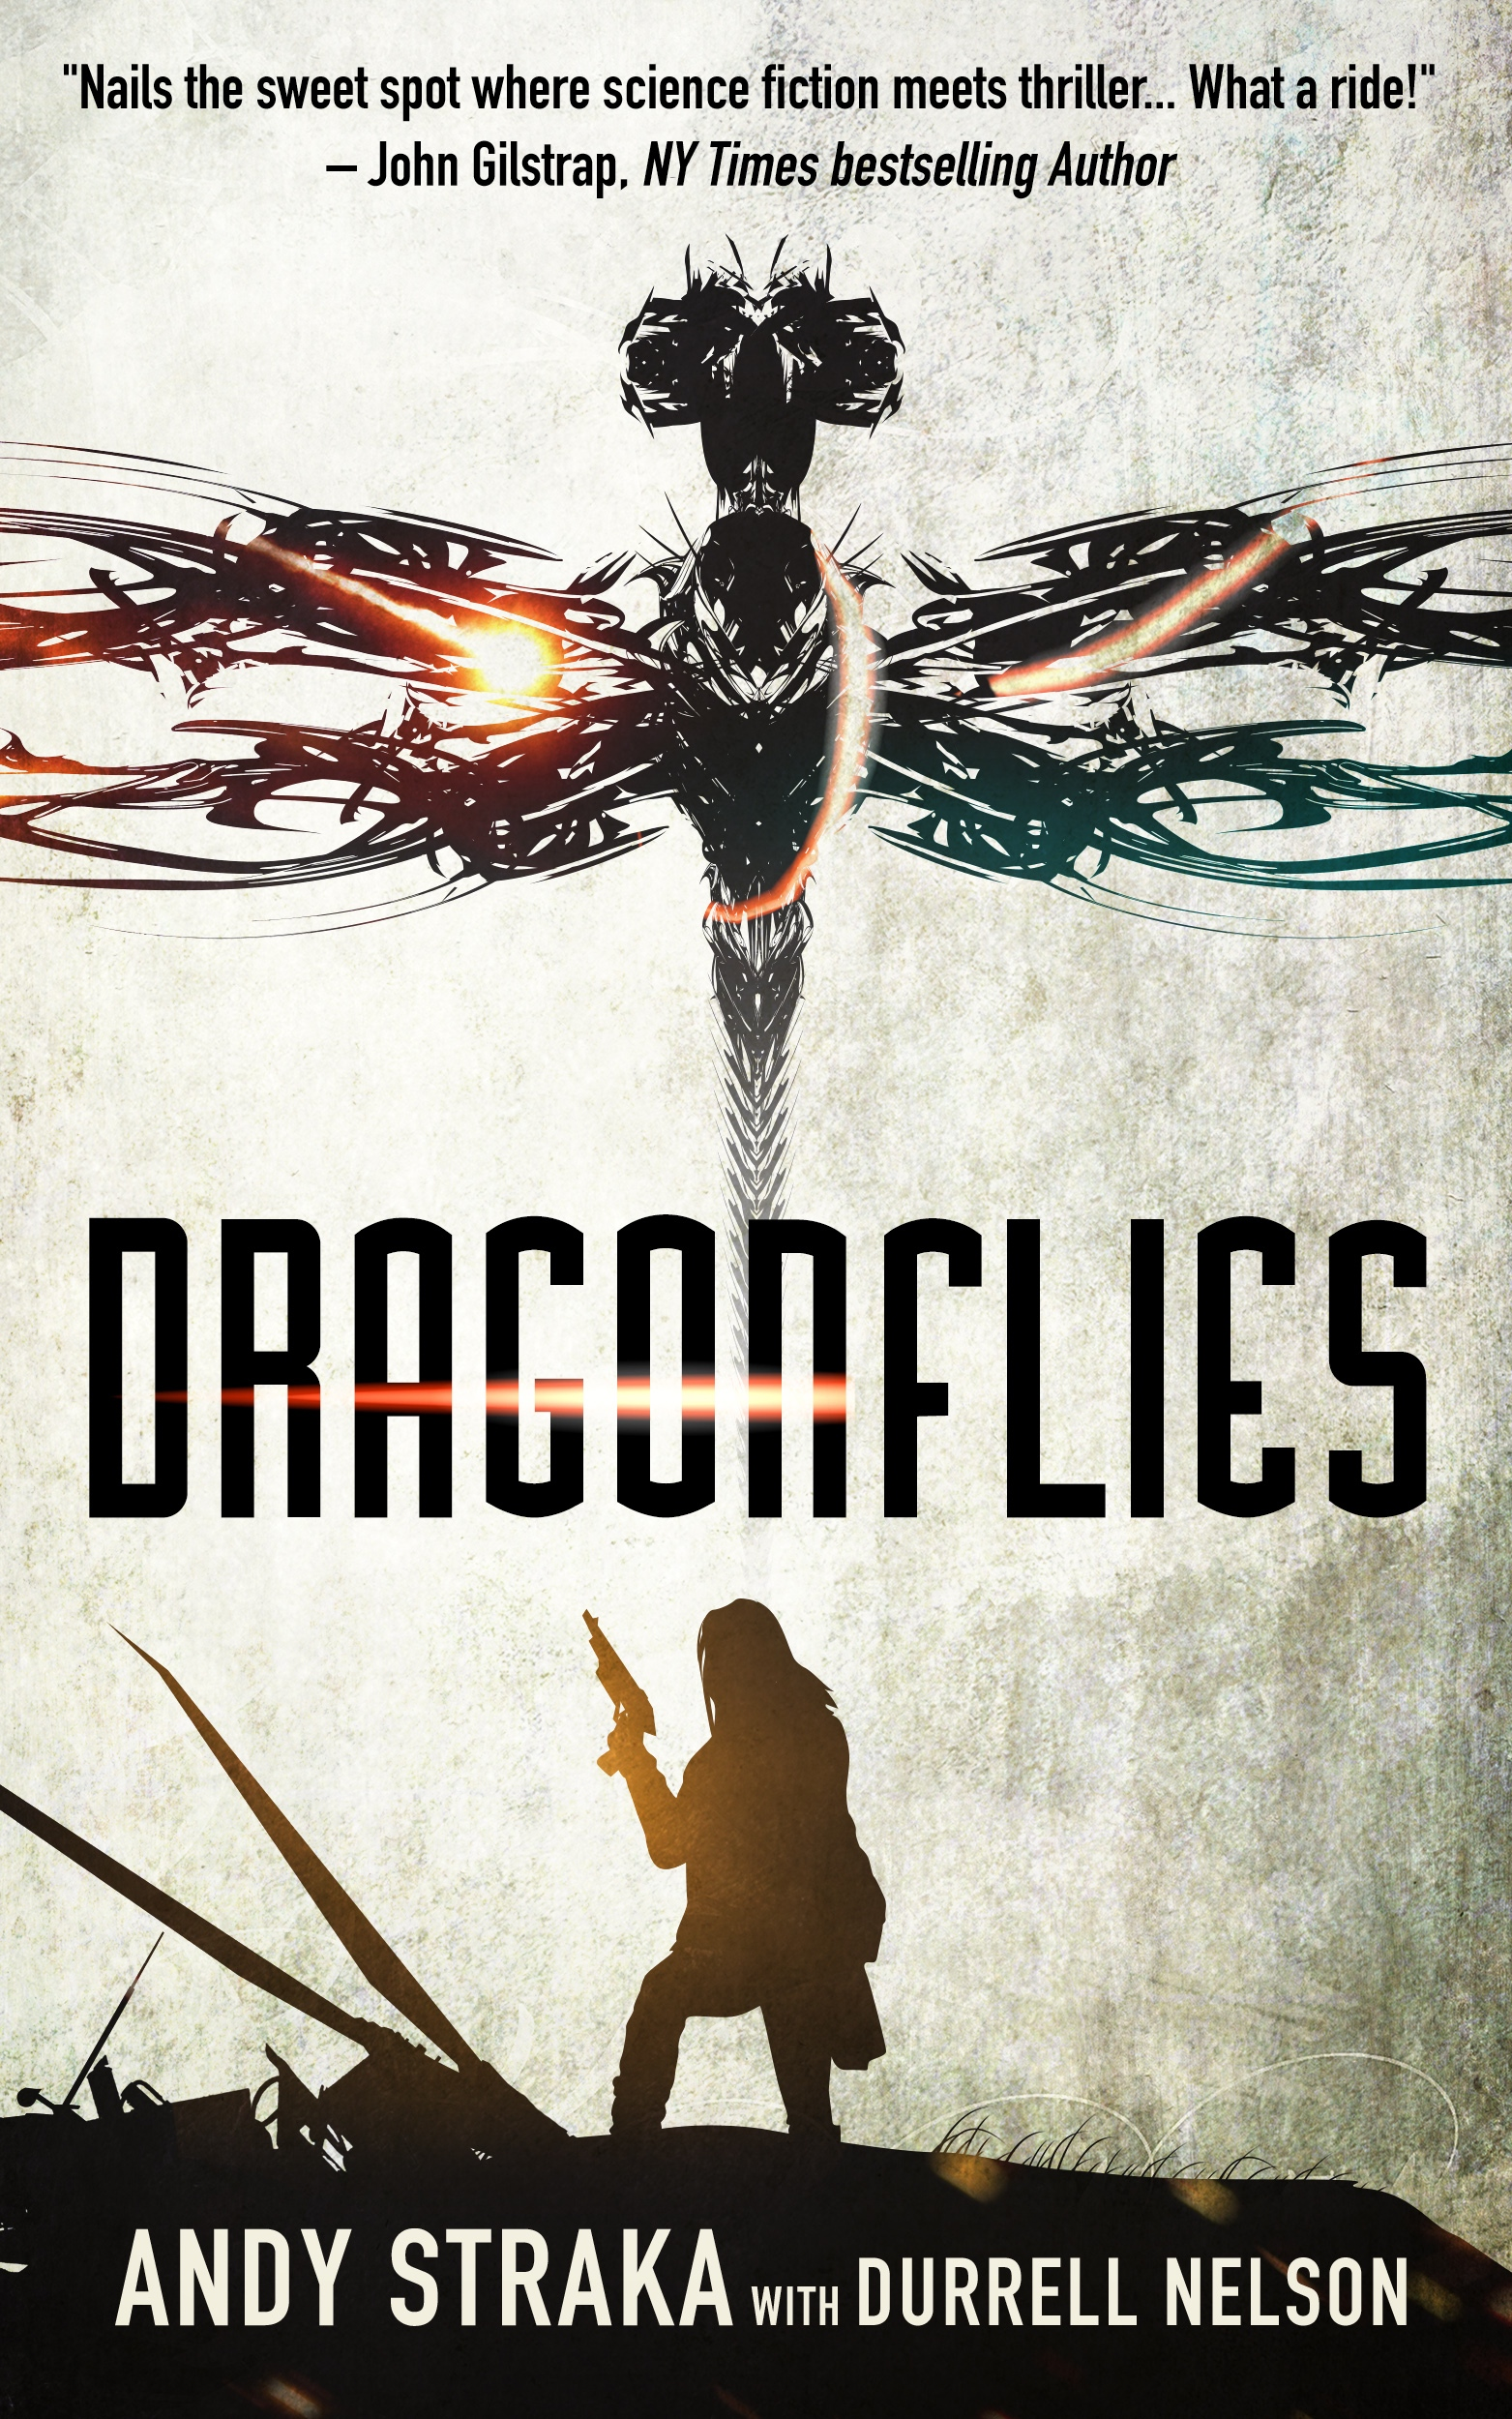 Dragonflies by Andy Strake & Durrell Nelson